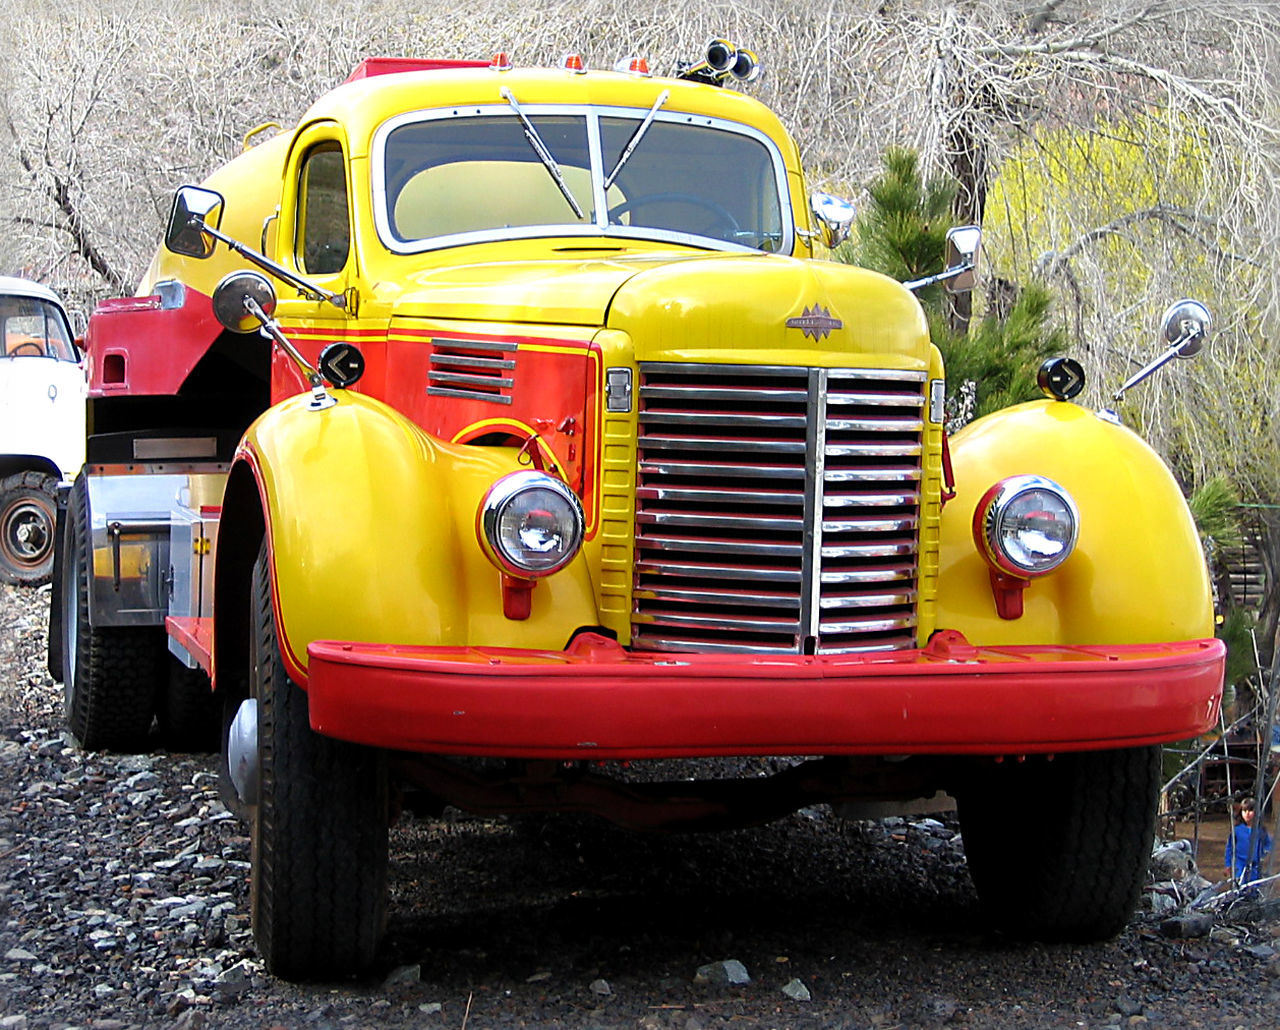 Day Golden Color Headlight Land Vehicle Mode Of Transport No People Outdoors Retro Styled Transportation Yellow